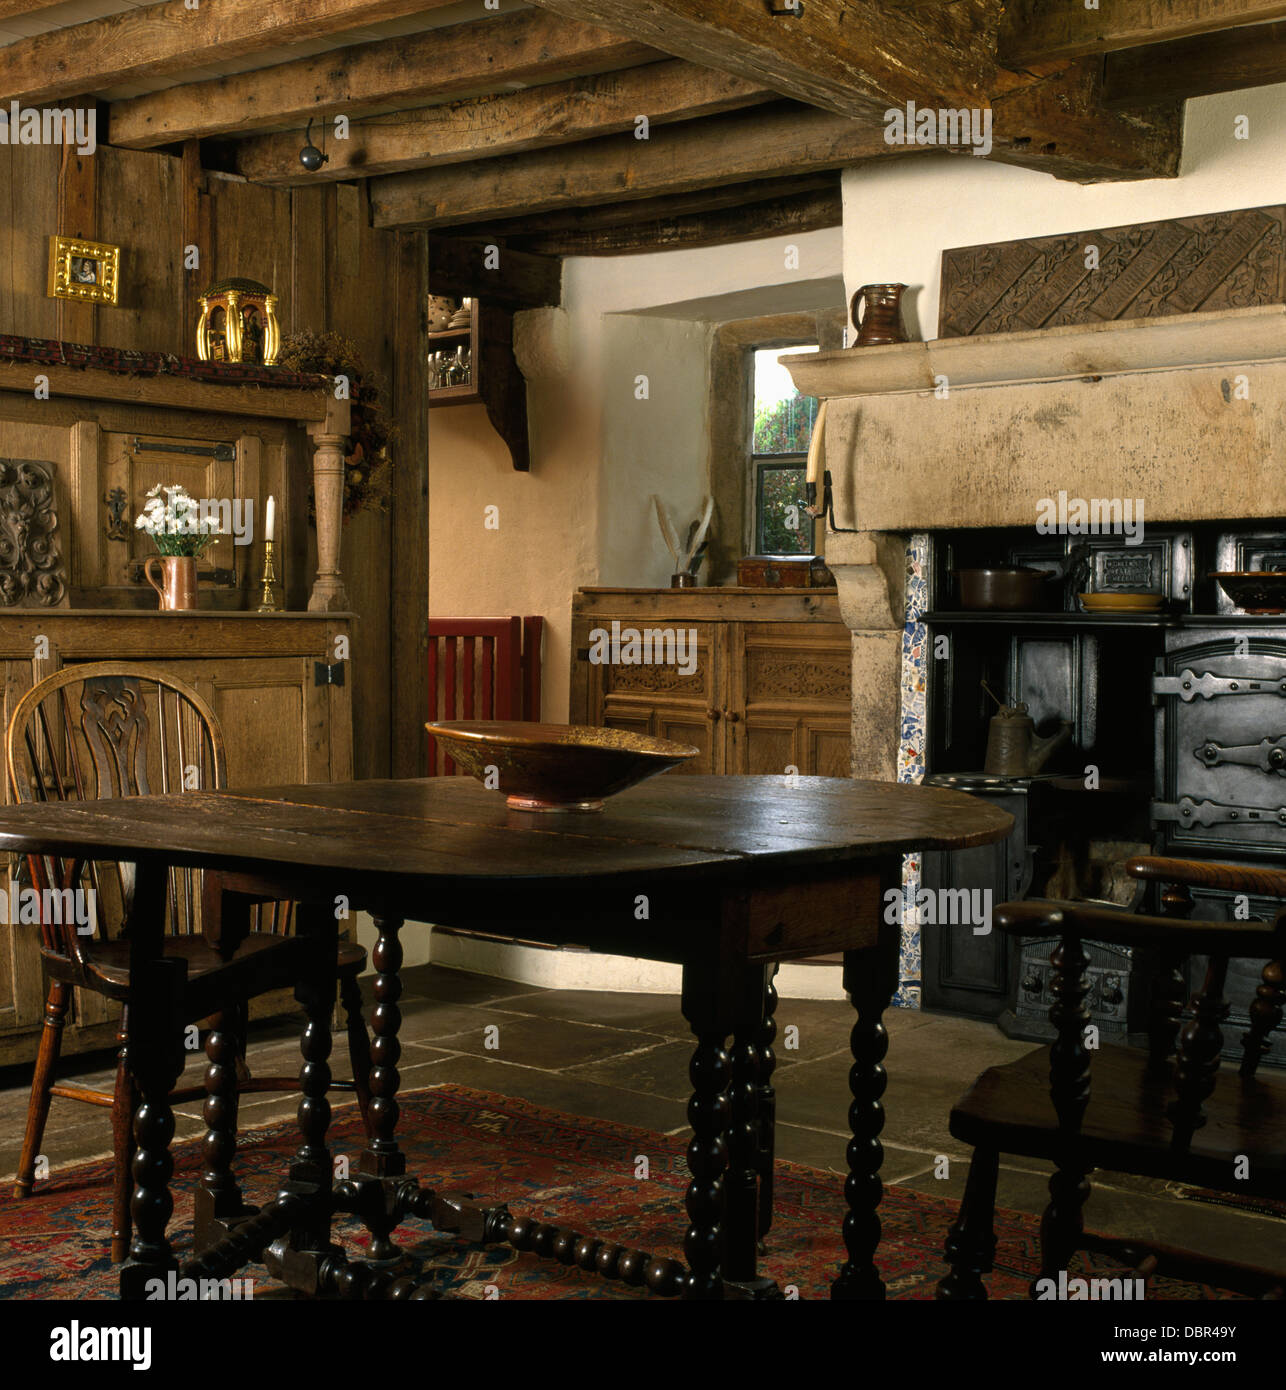 Windsor chairs and Jacobean oak table with barley-twist legs in beamed country dining room with old cast-iron range Stock Photo